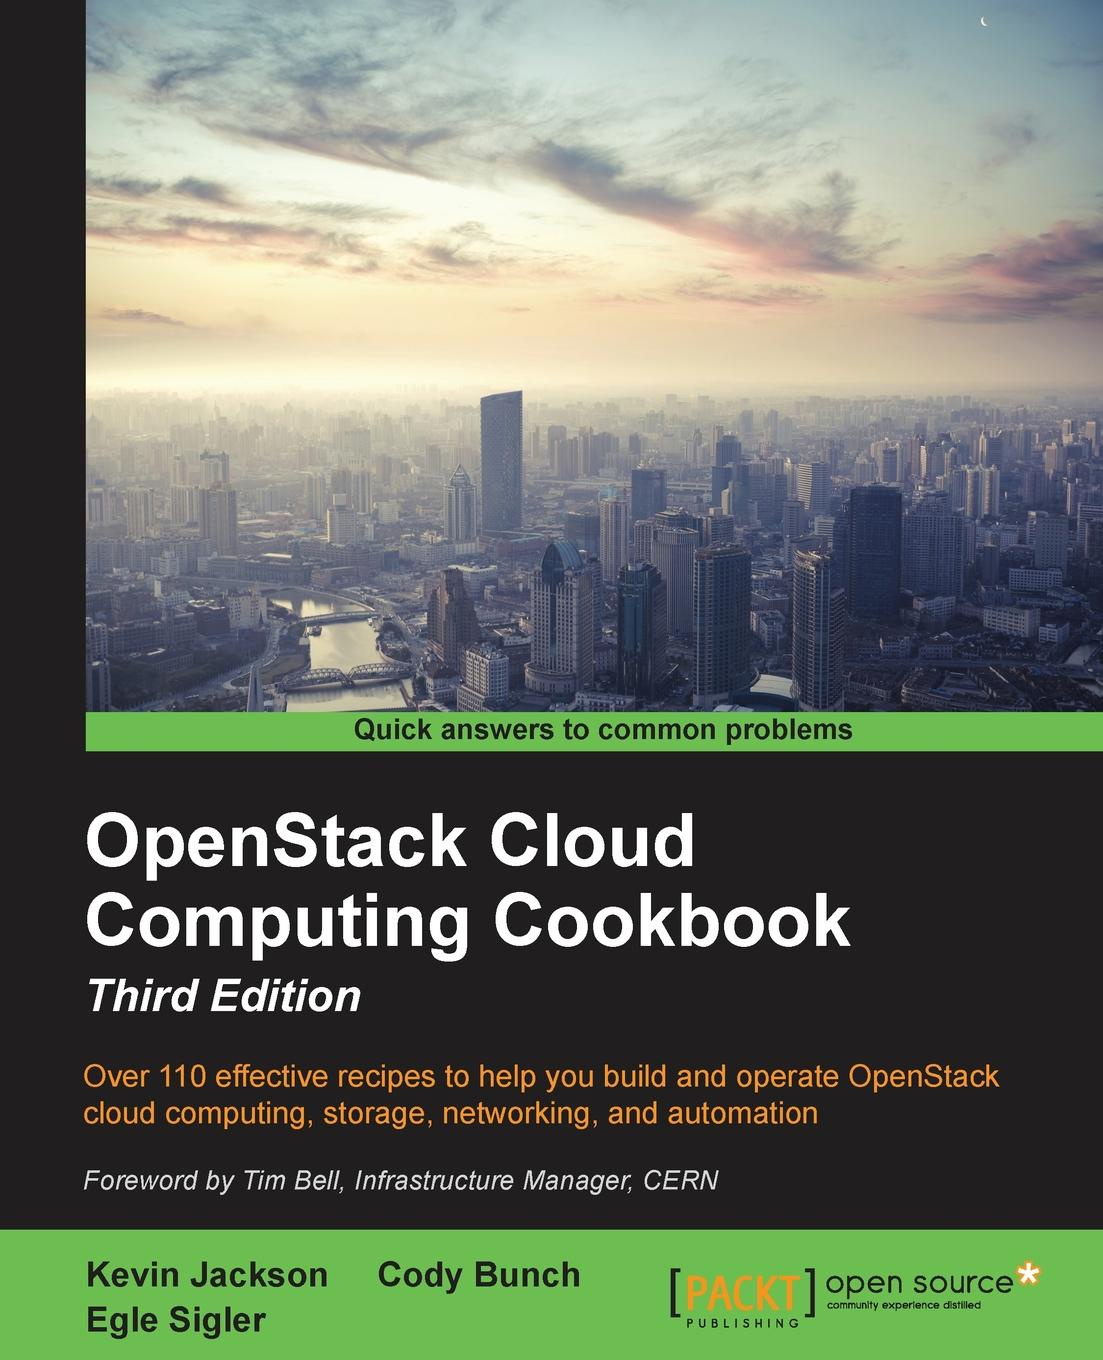 Kevin Jackson, Cody Bunch, Egle Sigler OpenStack Cloud Computing Cookbook - Third Edition